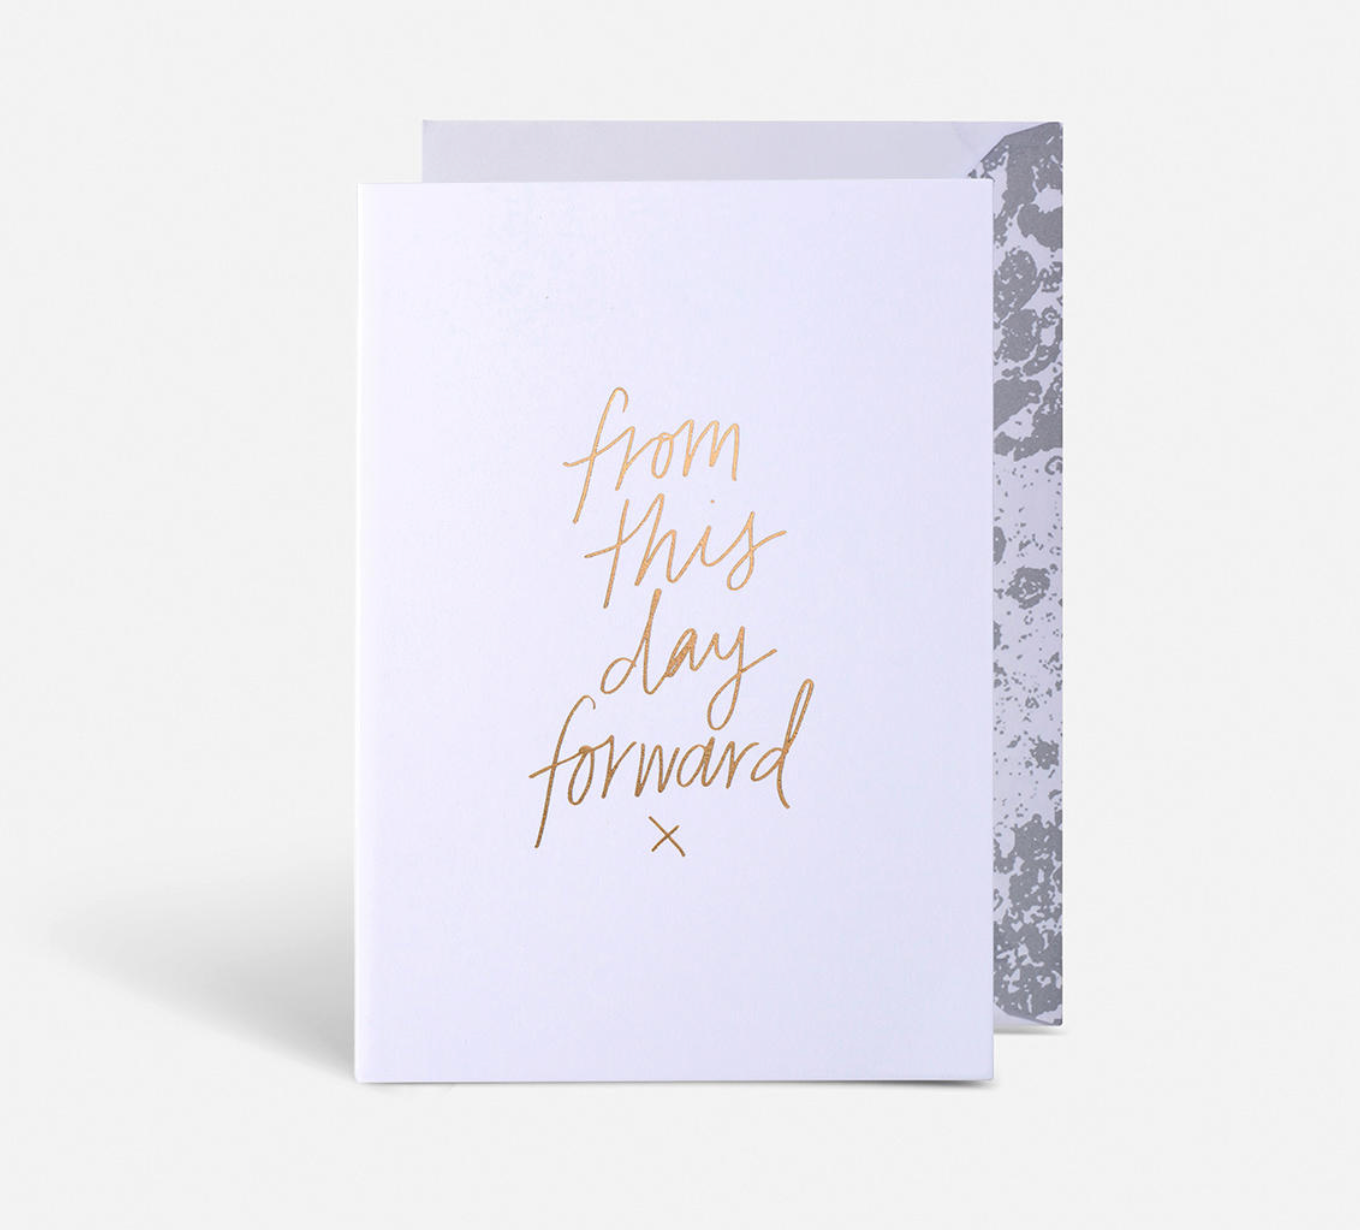 This day forward card